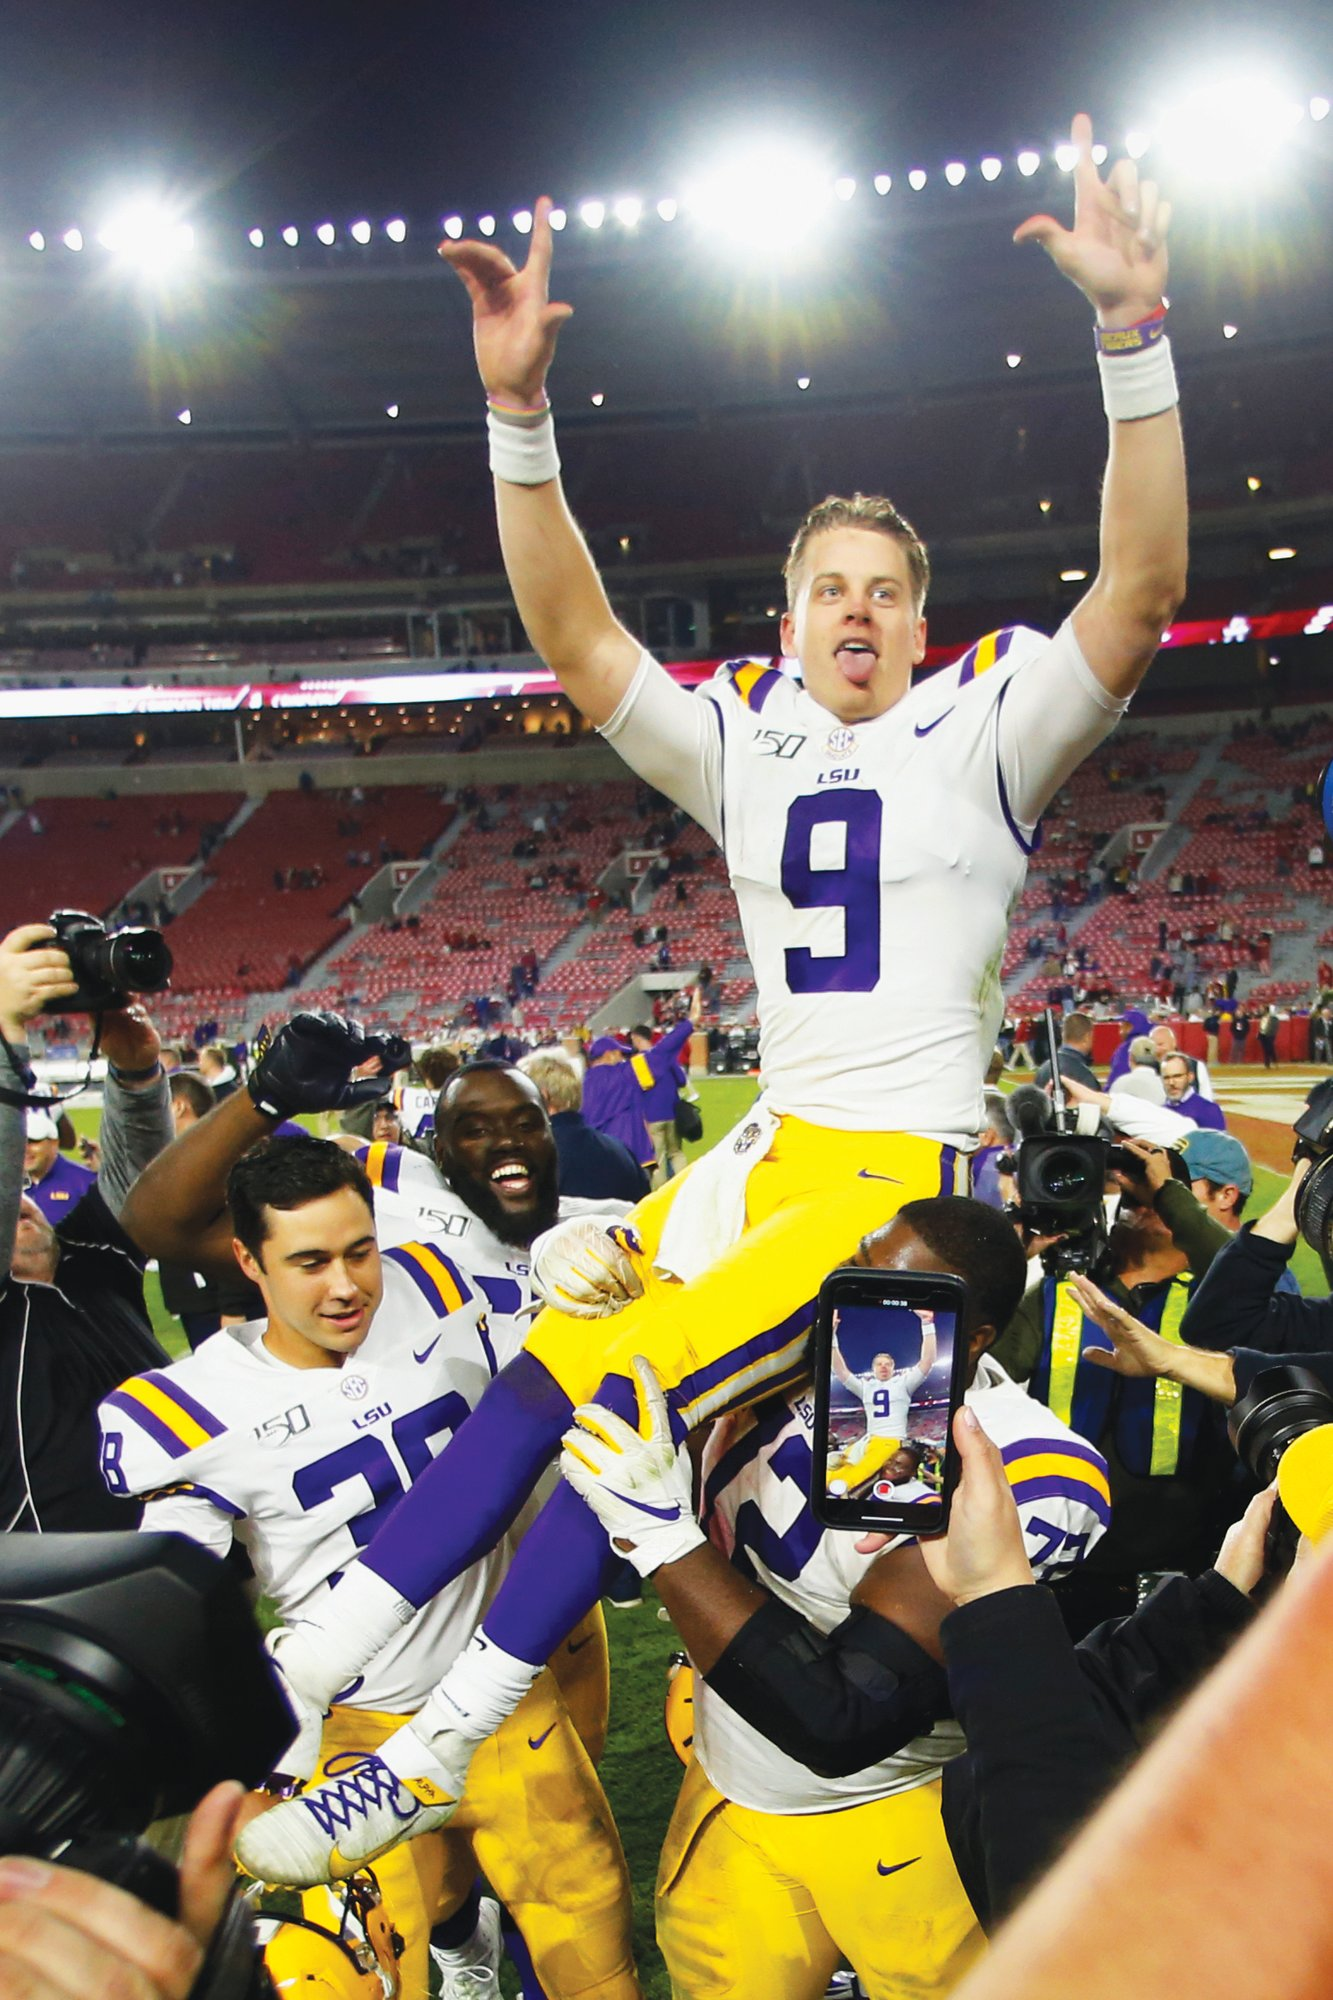 Clemson jumps up to third in CFP Poll, LSU takes top spot | The Sumter Item